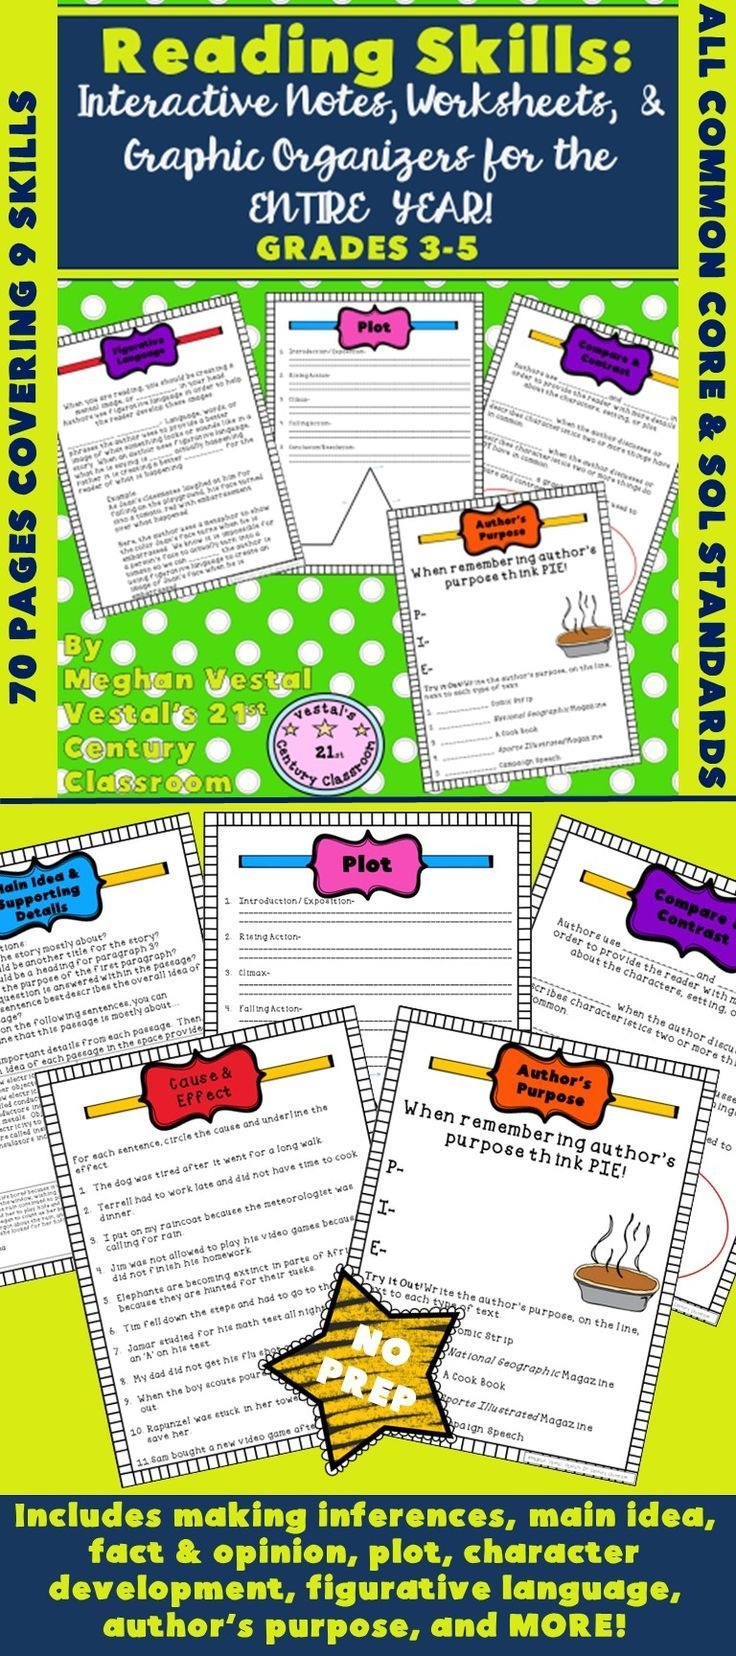 Reading Skills Notes Worksheets Graphic Organizers Entire Year Grades 3 5 Reading Skills Upper Elementary Reading Graphic Organizers [ 1656 x 736 Pixel ]